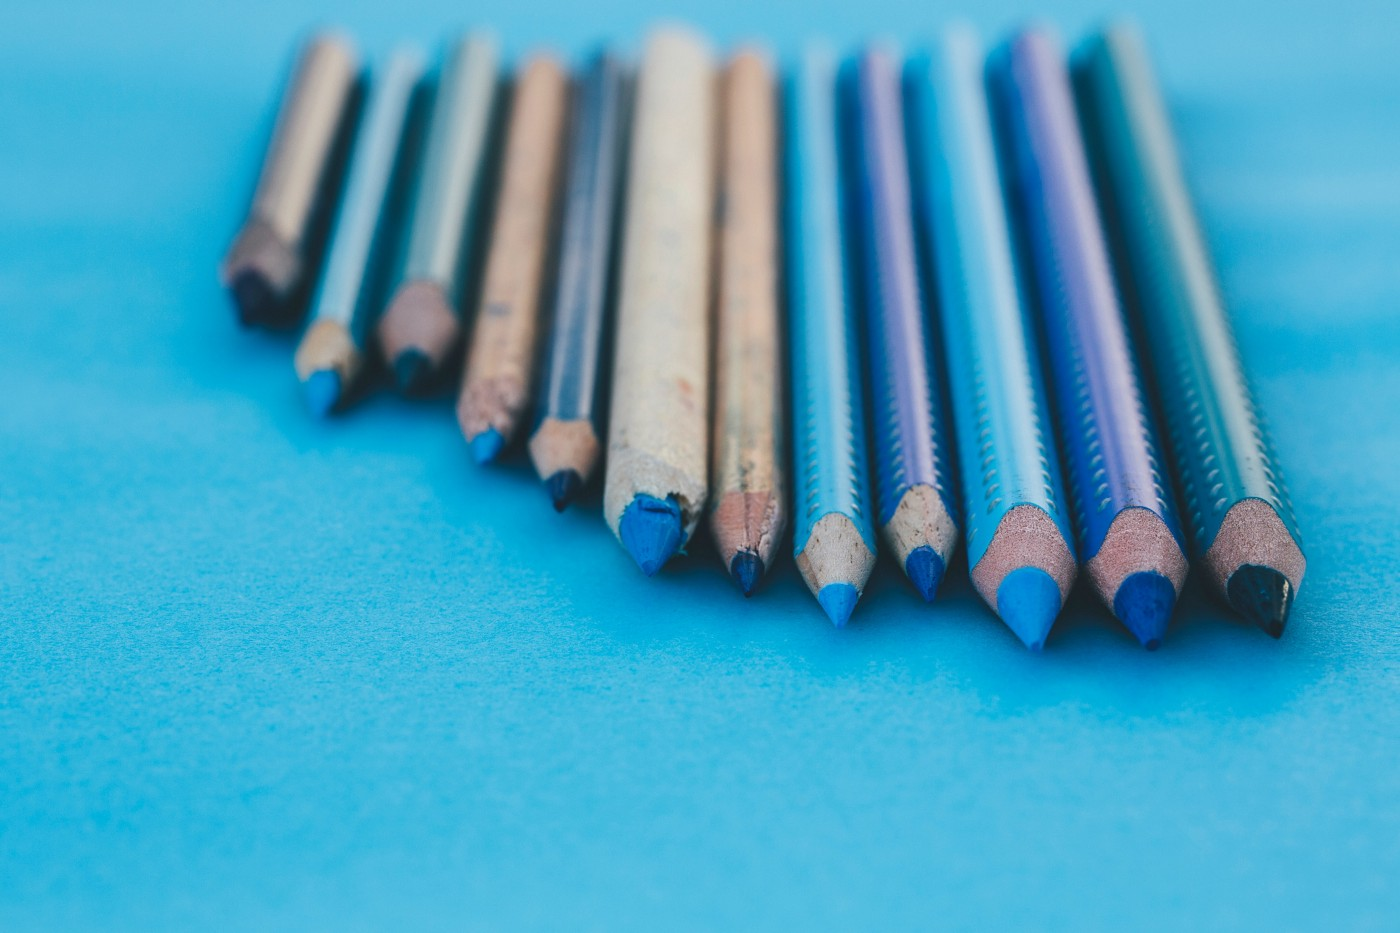 Line of irregular length 12 pencils in various shades of blue